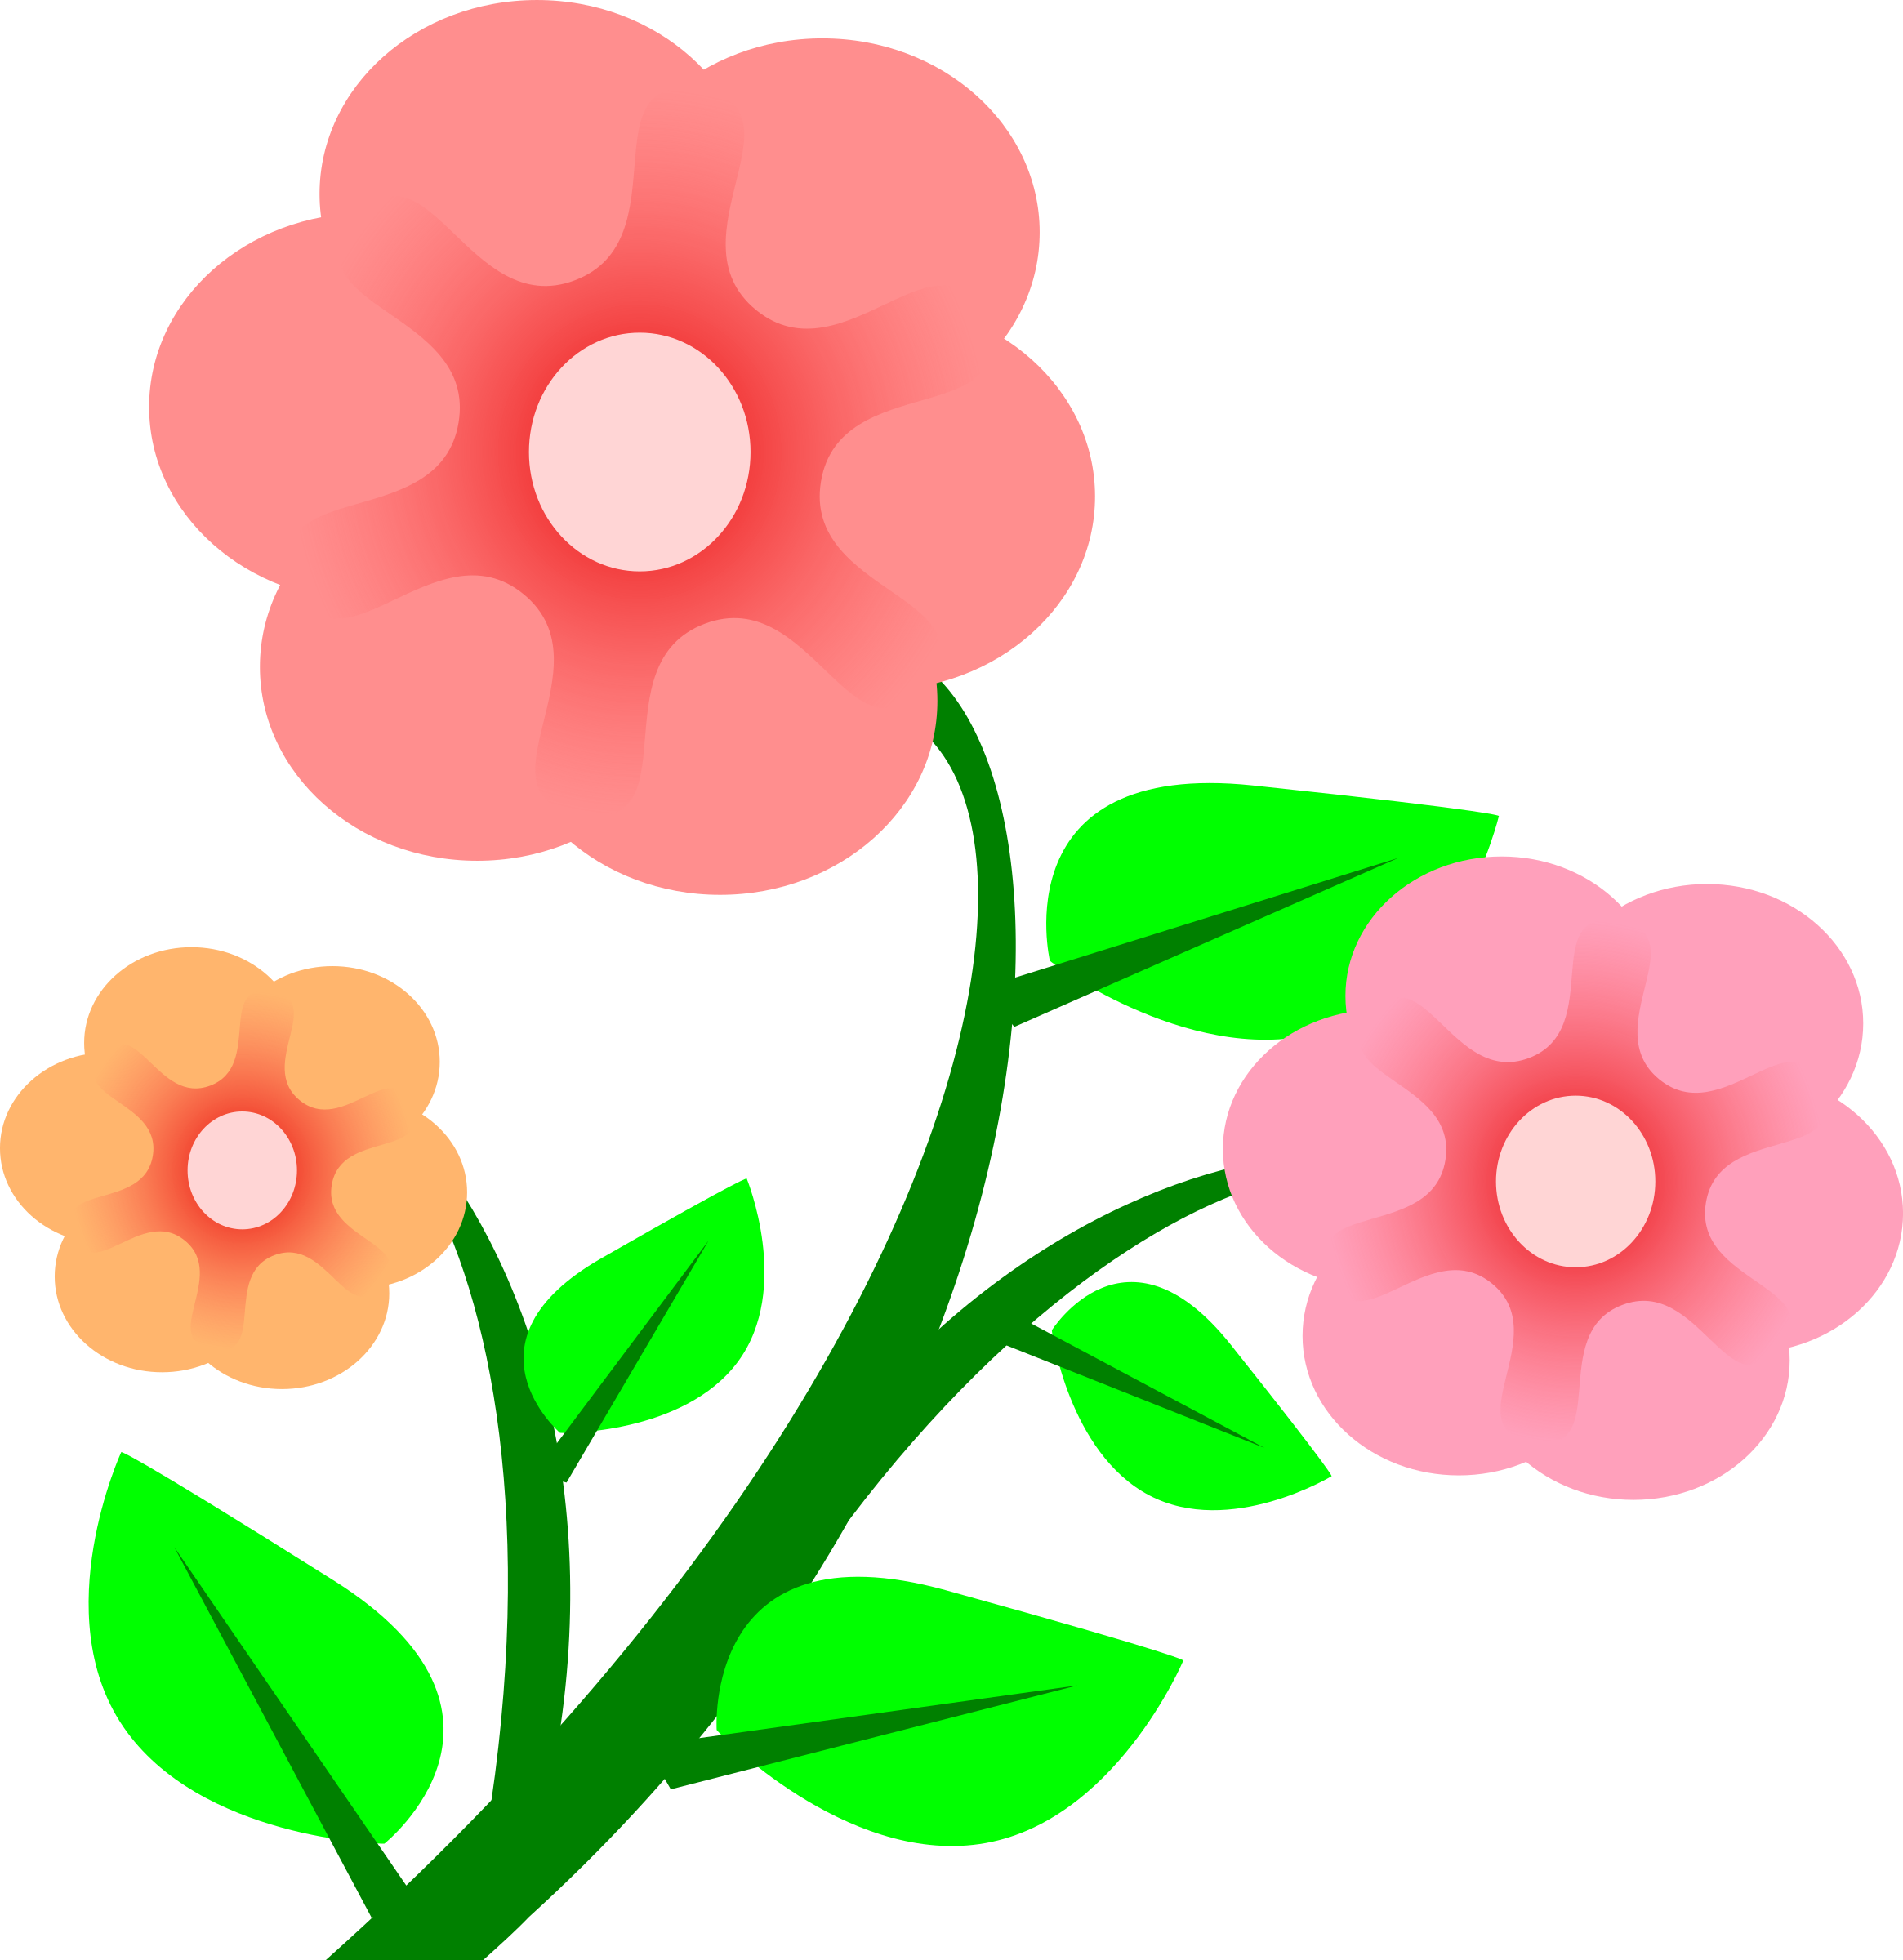 Dancing flower clipart picture transparent Free Flower Clipart For Kids at GetDrawings.com | Free for personal ... picture transparent